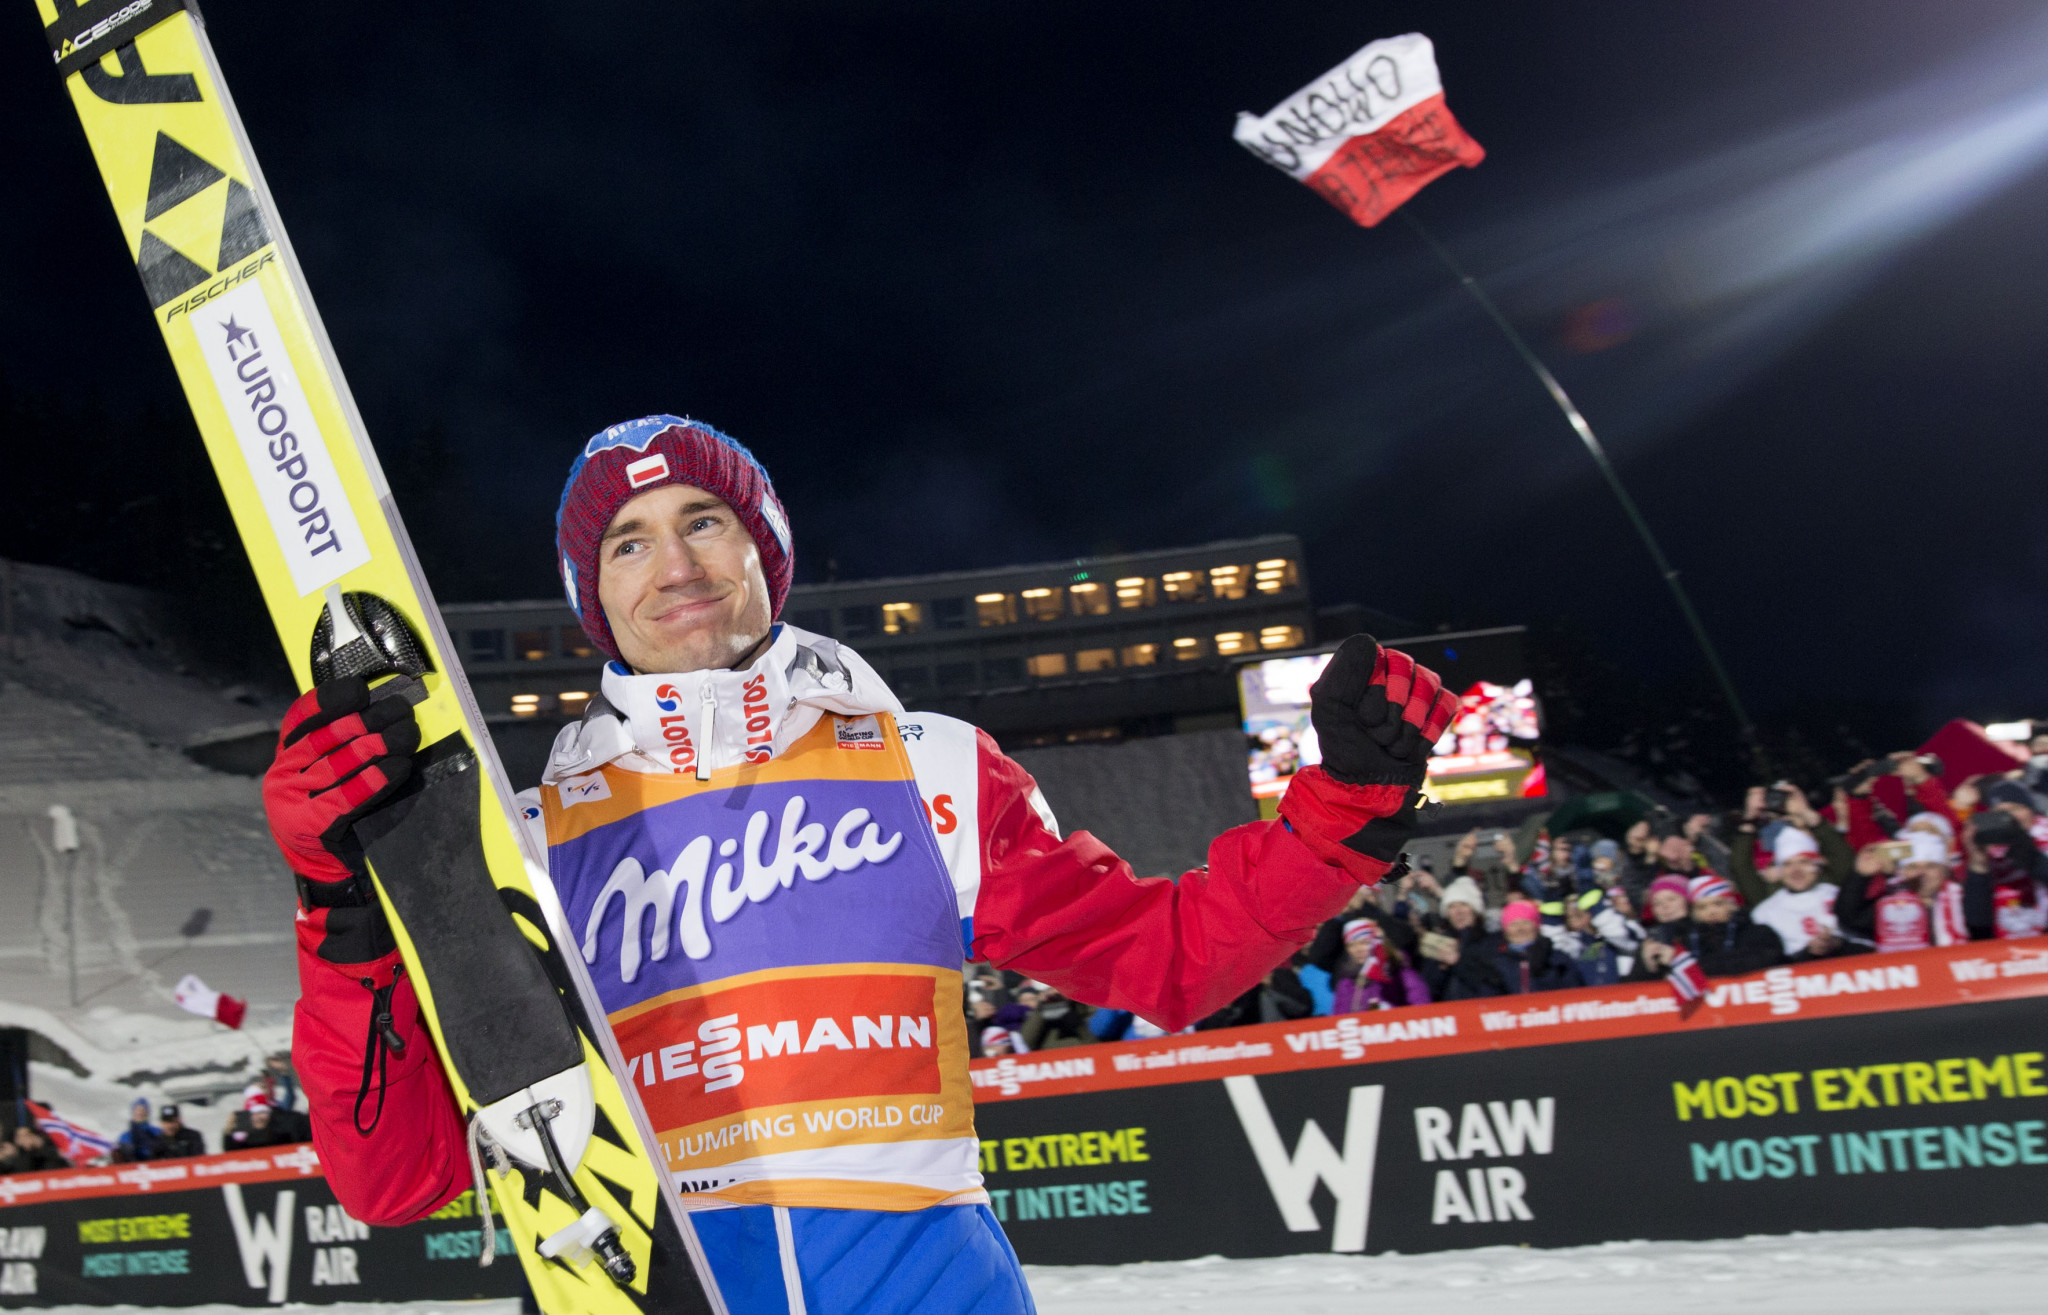 Stoch again sublime at Ski Jumping World Cup in Vikersund